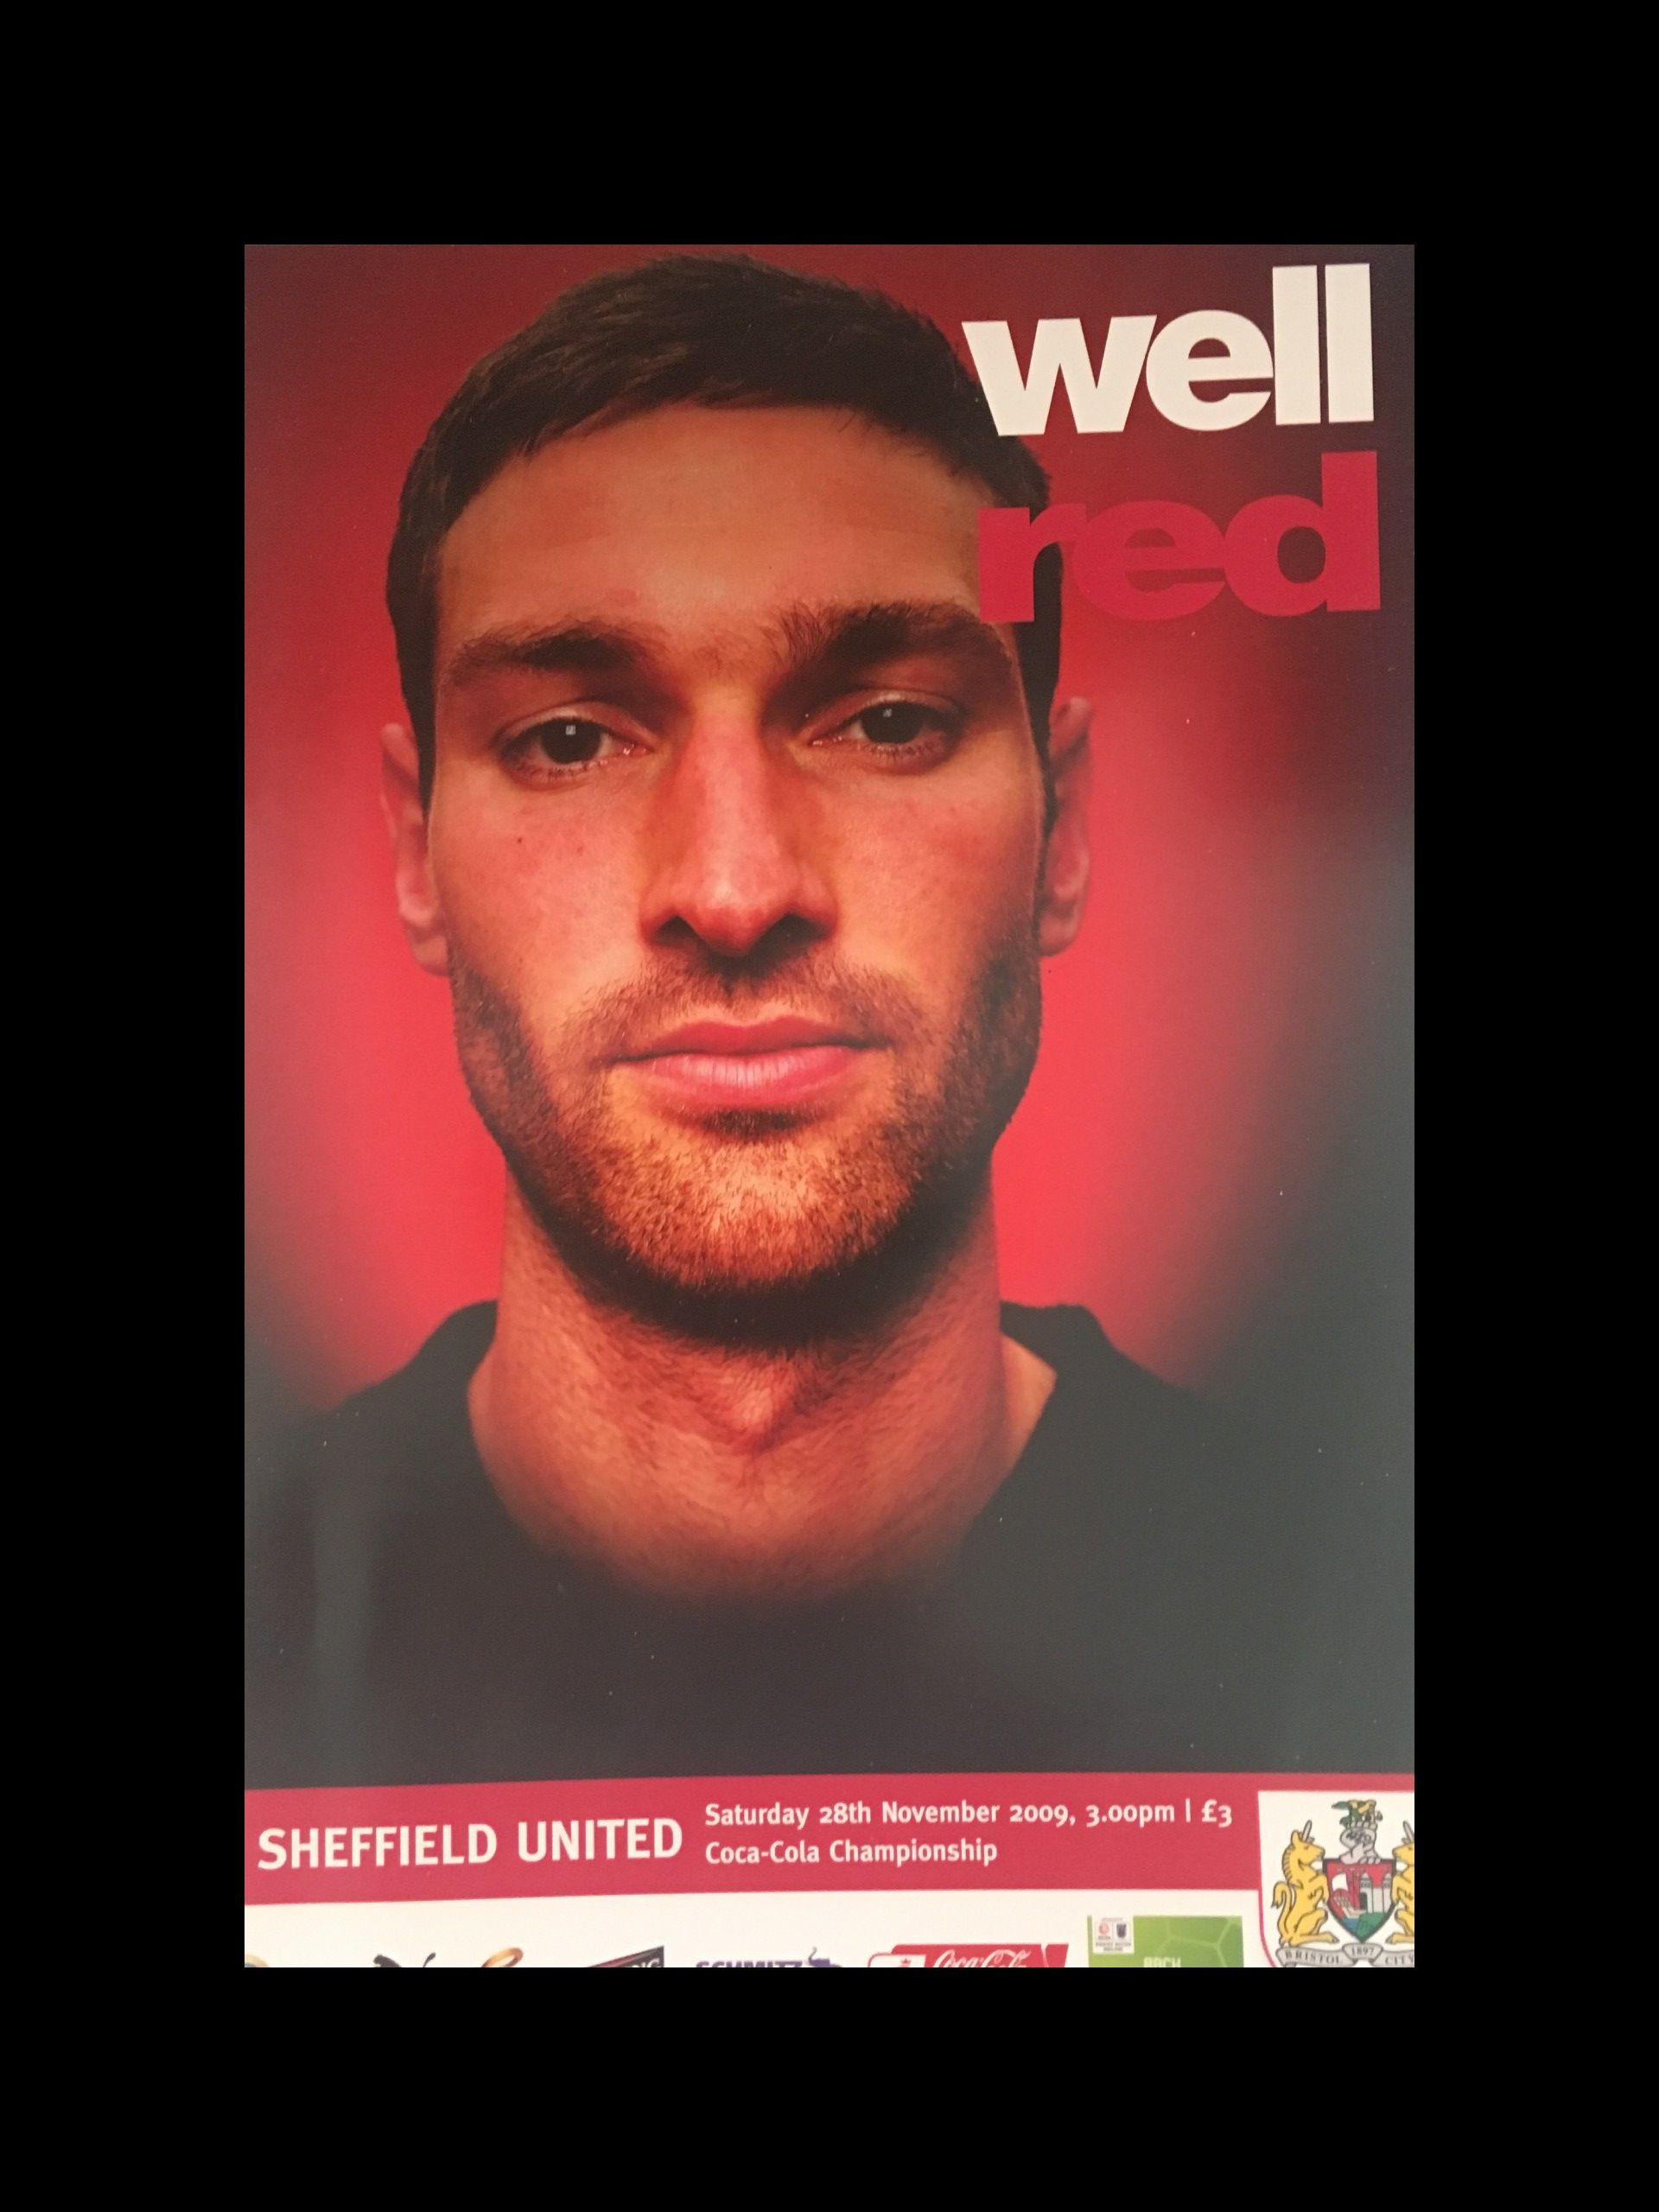 Bristol City v Sheffield United 28-11-2009 Programme